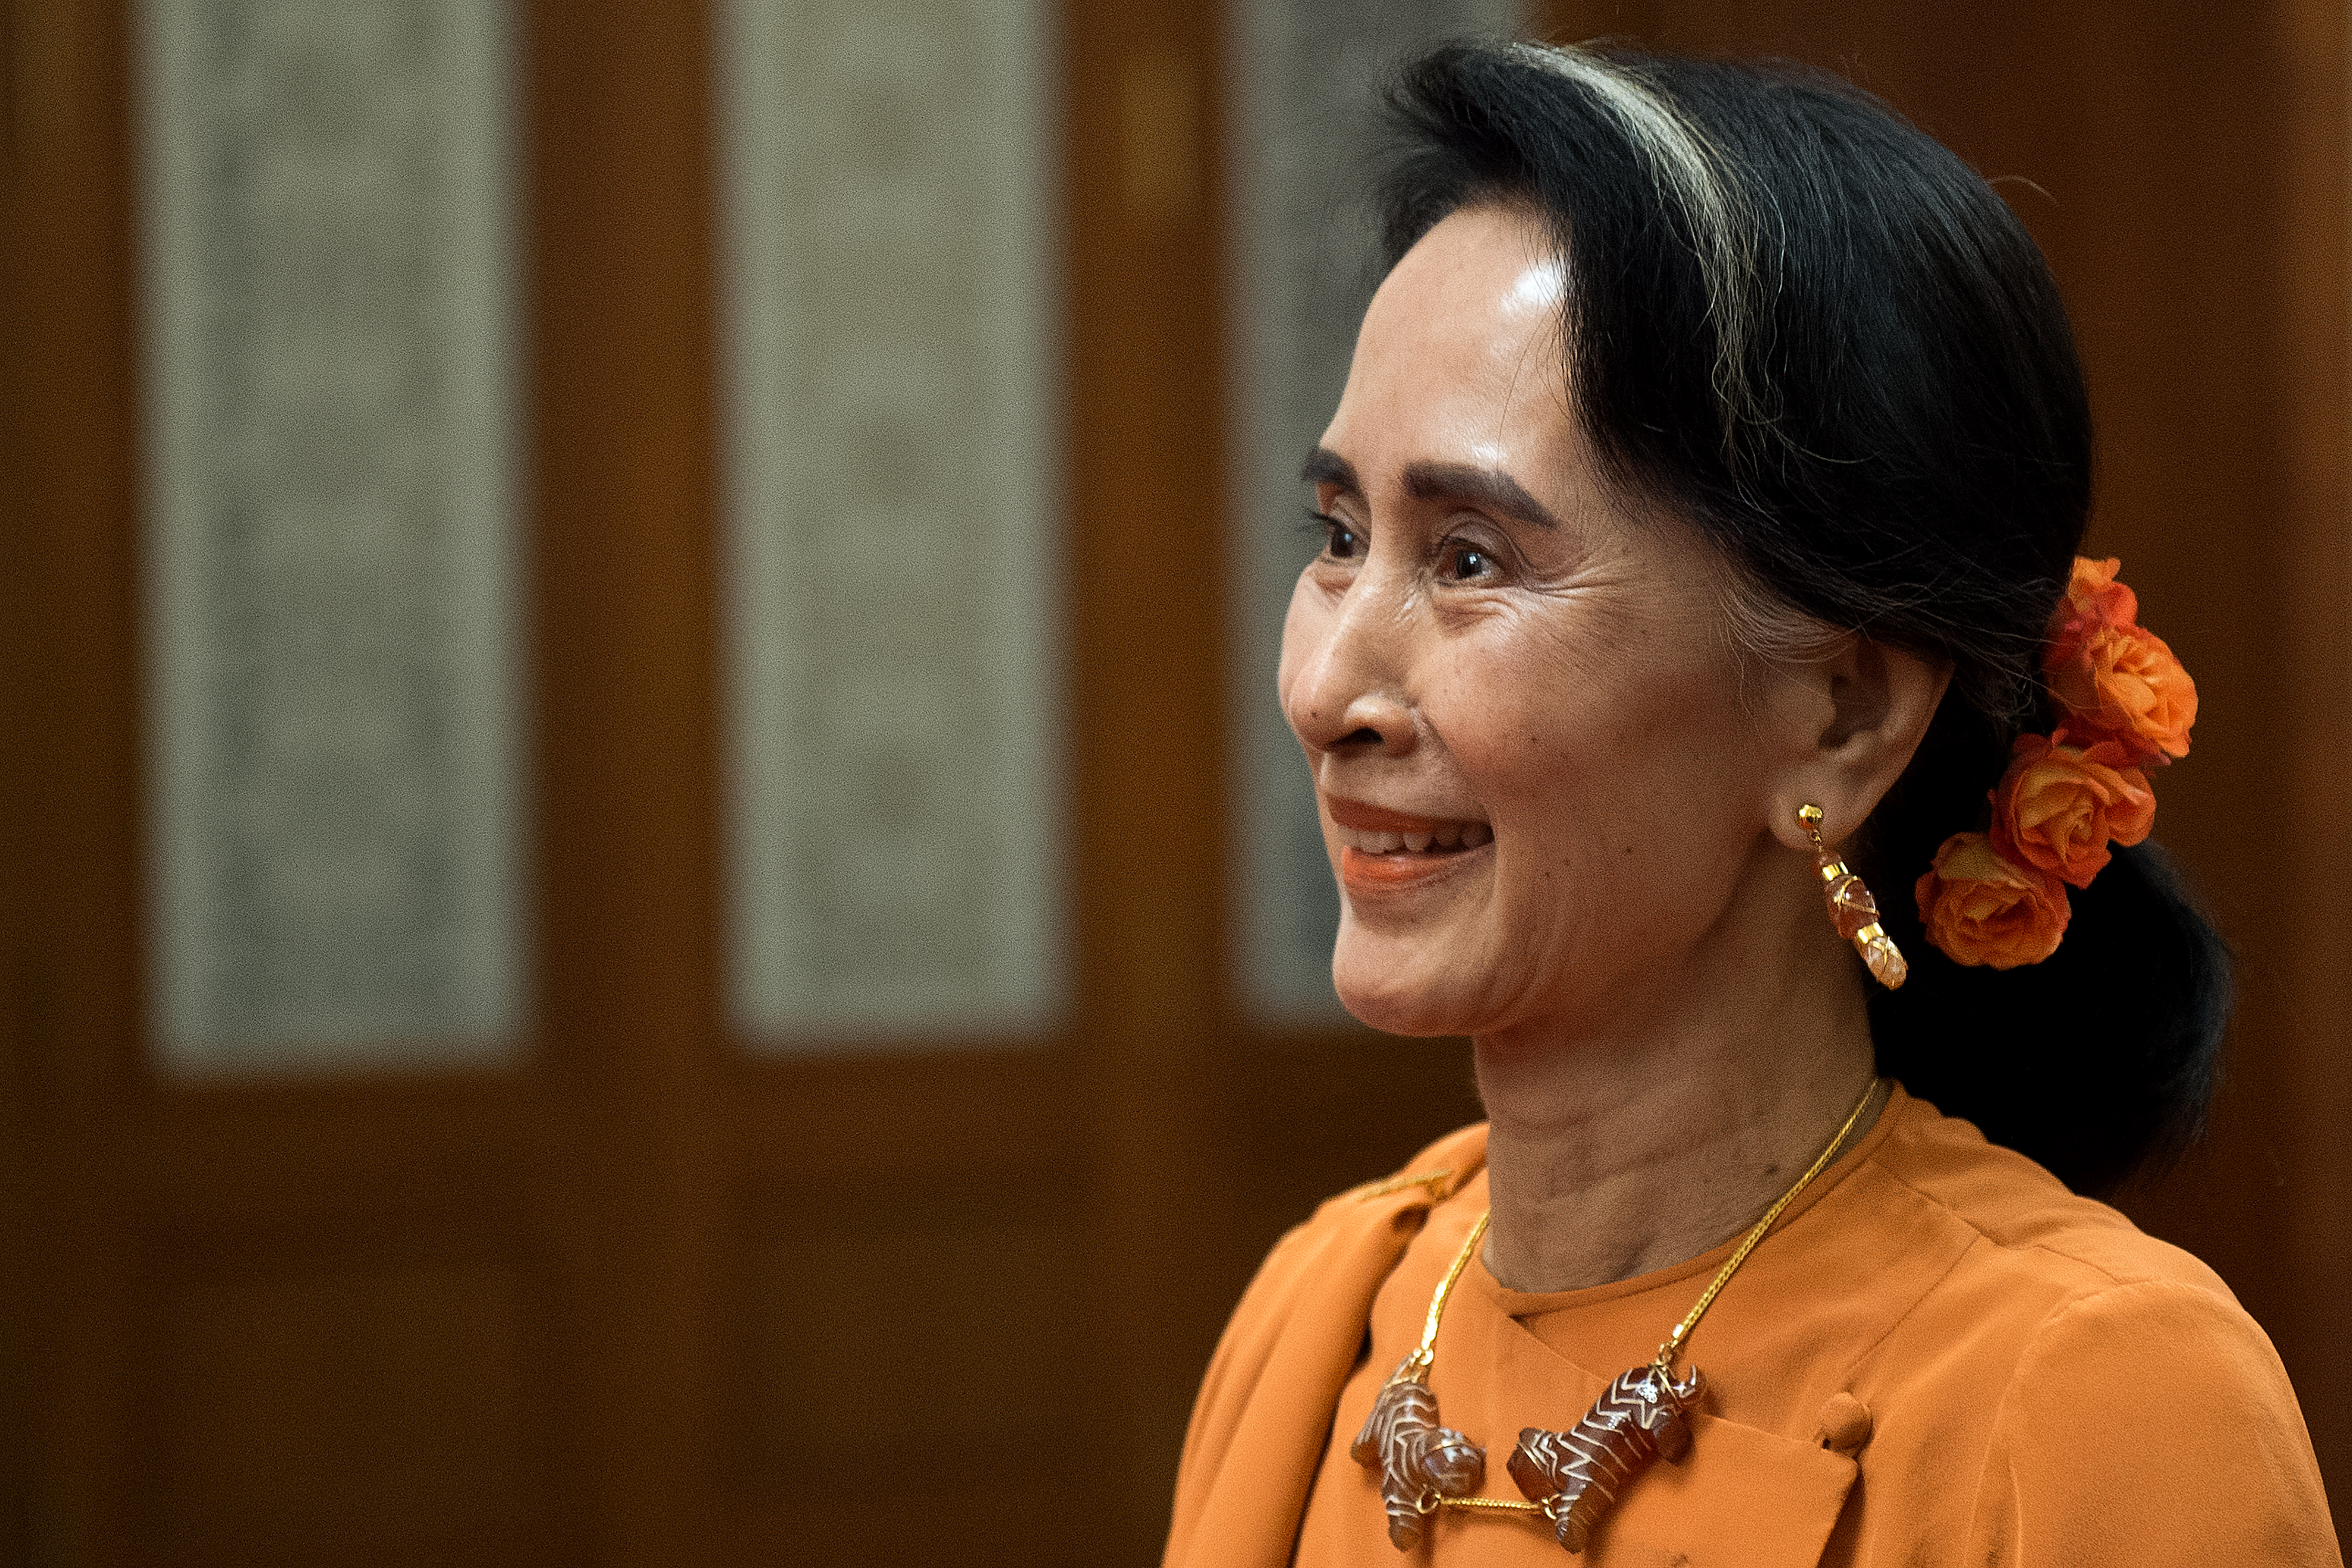 Myanmar State Counsellor Aung San Suu Kyi smiles at the Great Hall of the People on May 16, 2017 in Beijing, China.